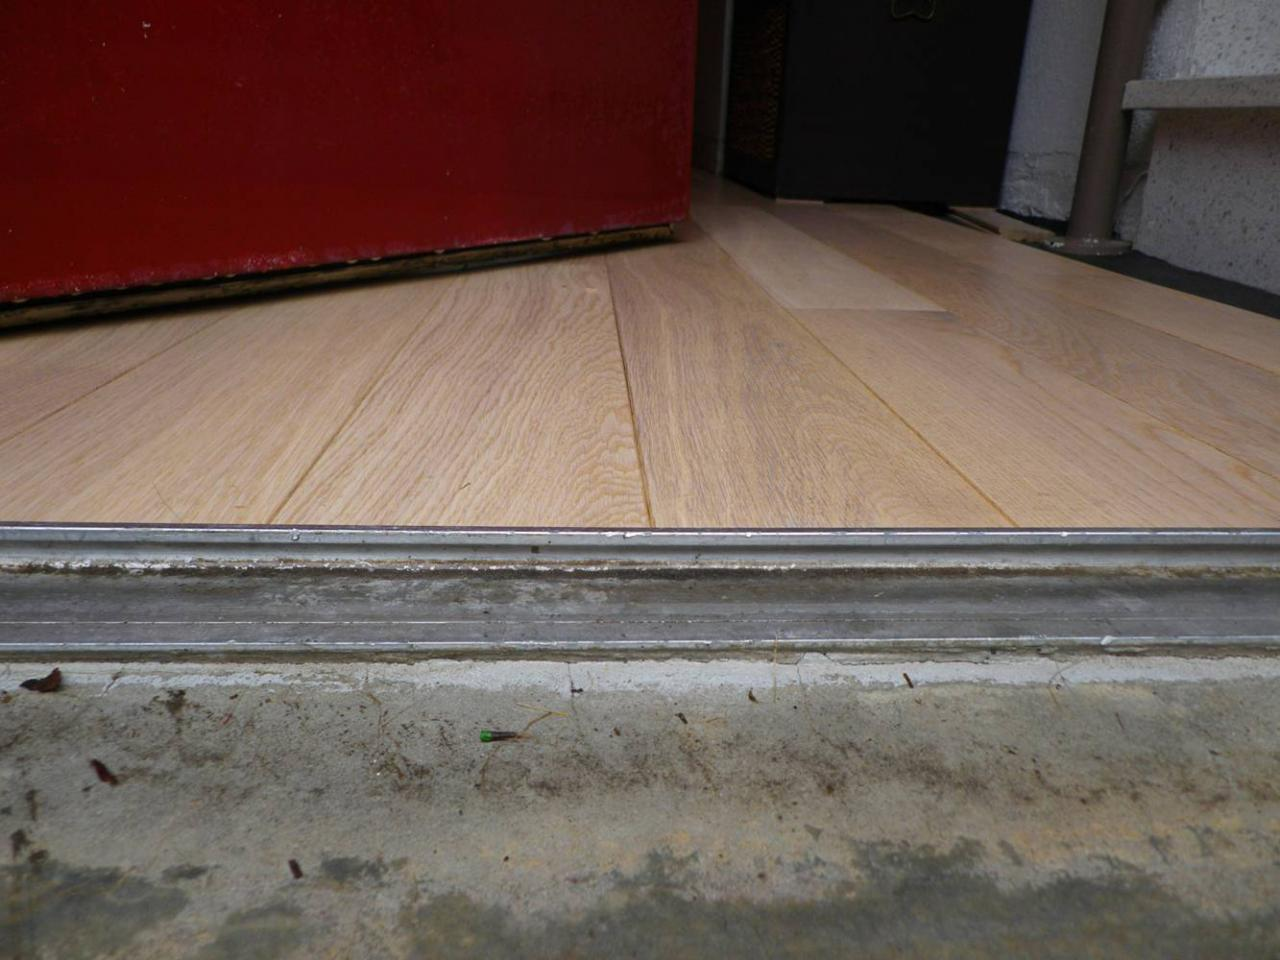 Parquet pin peindre faire devis en ligne noisy le grand for Peindre du parquet en pin